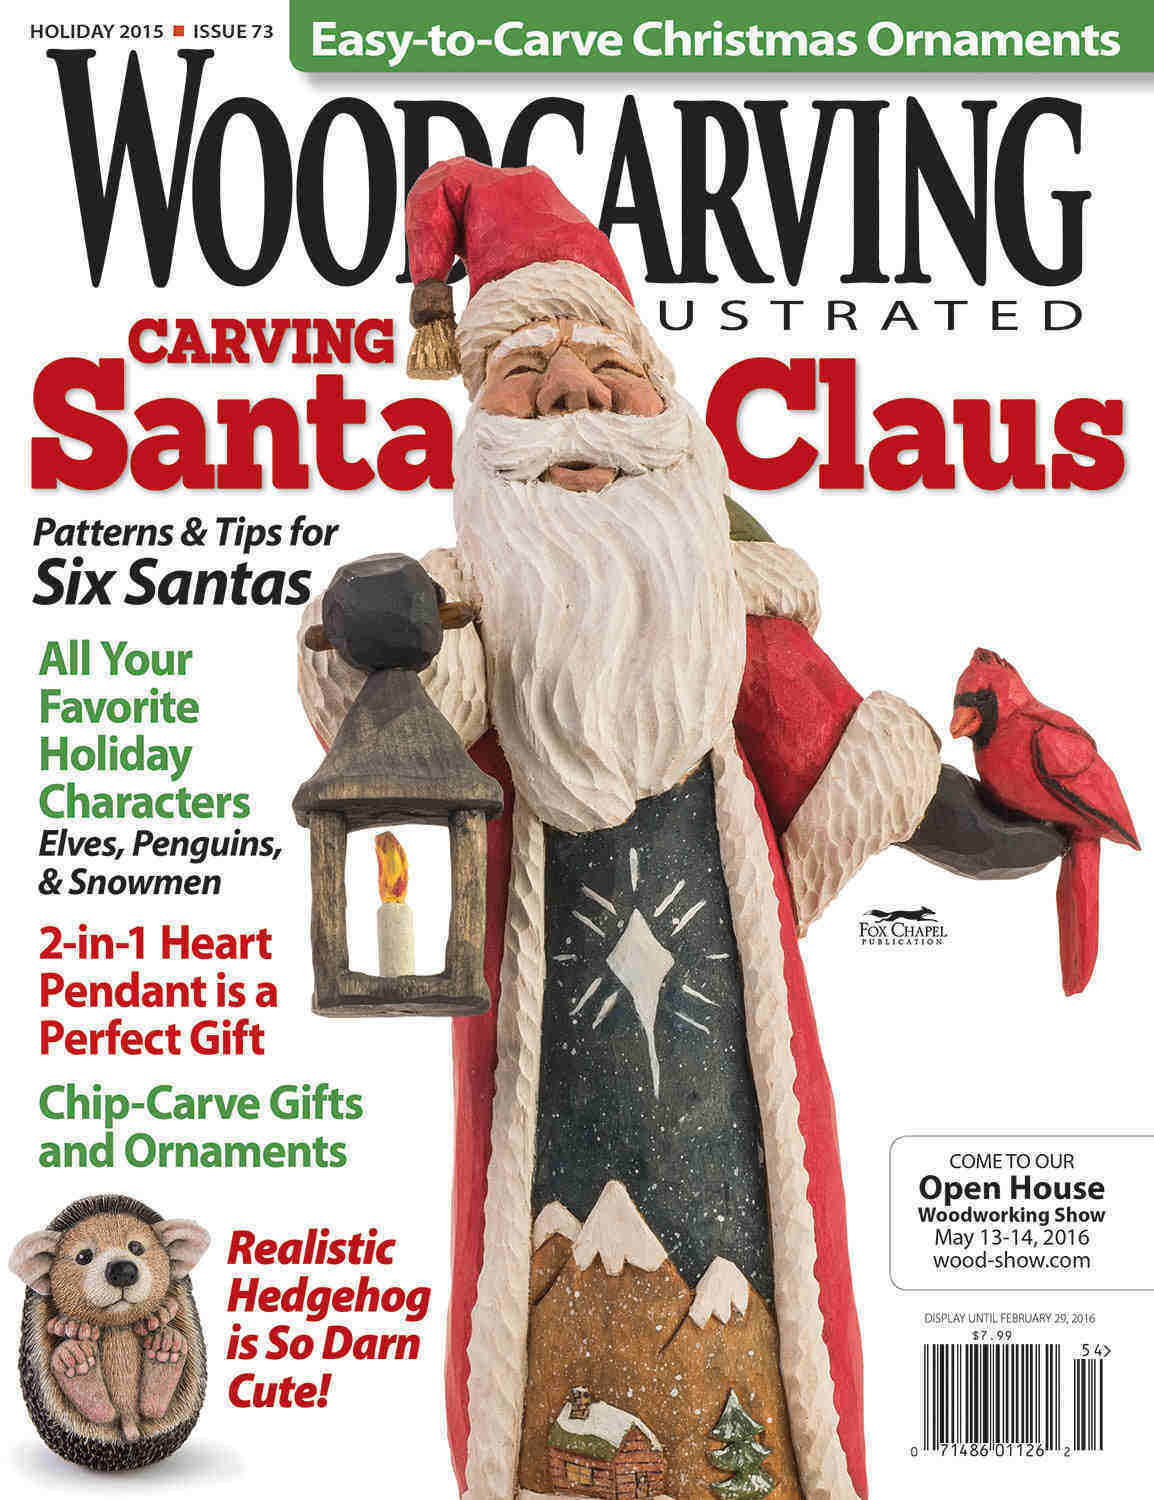 Issue 73-Holiday 2015